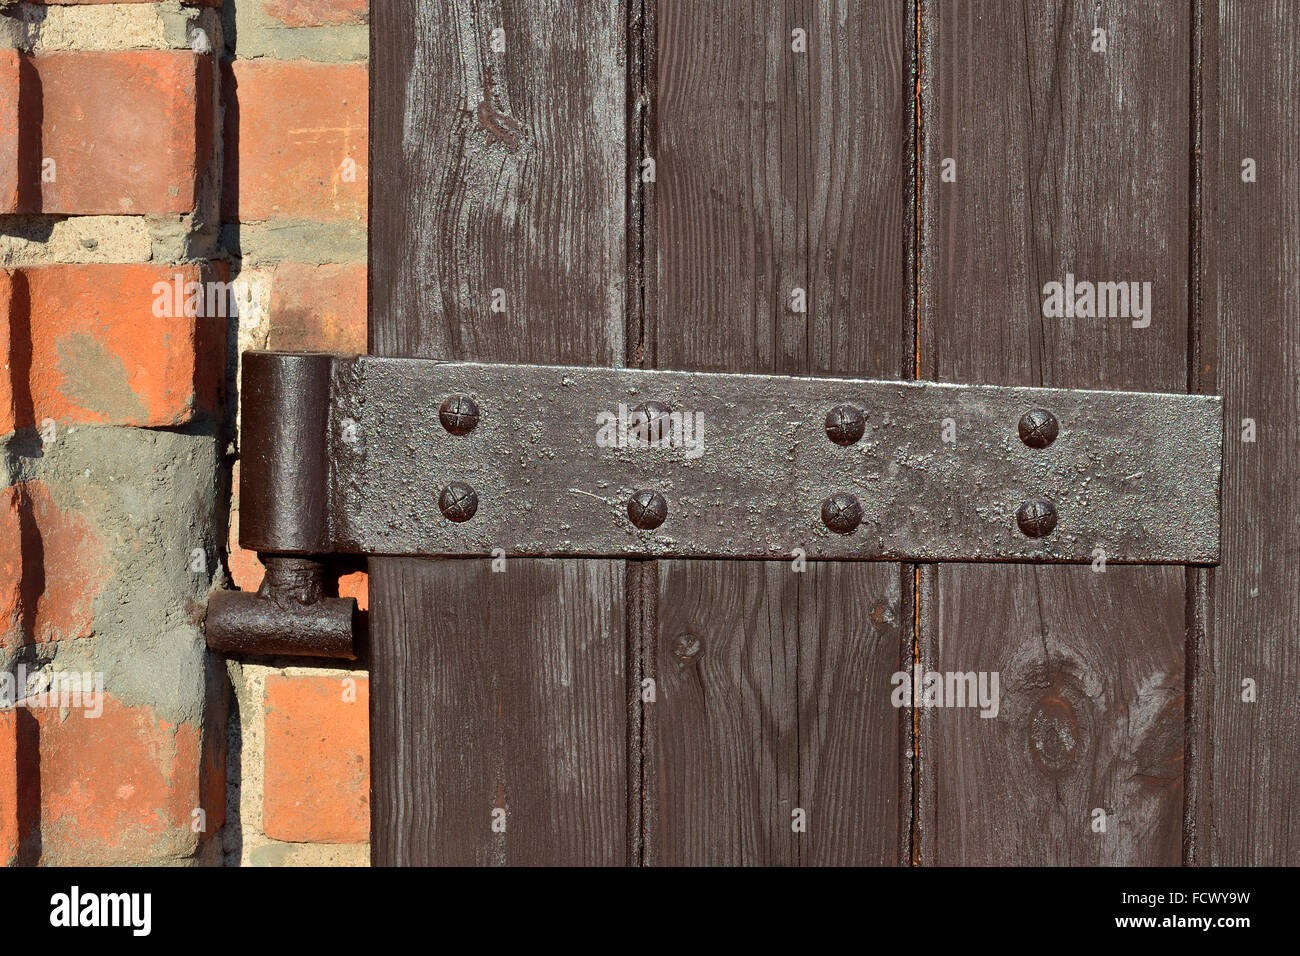 Ancient Door Hinge On Wooden Door Closeup   Stock Image